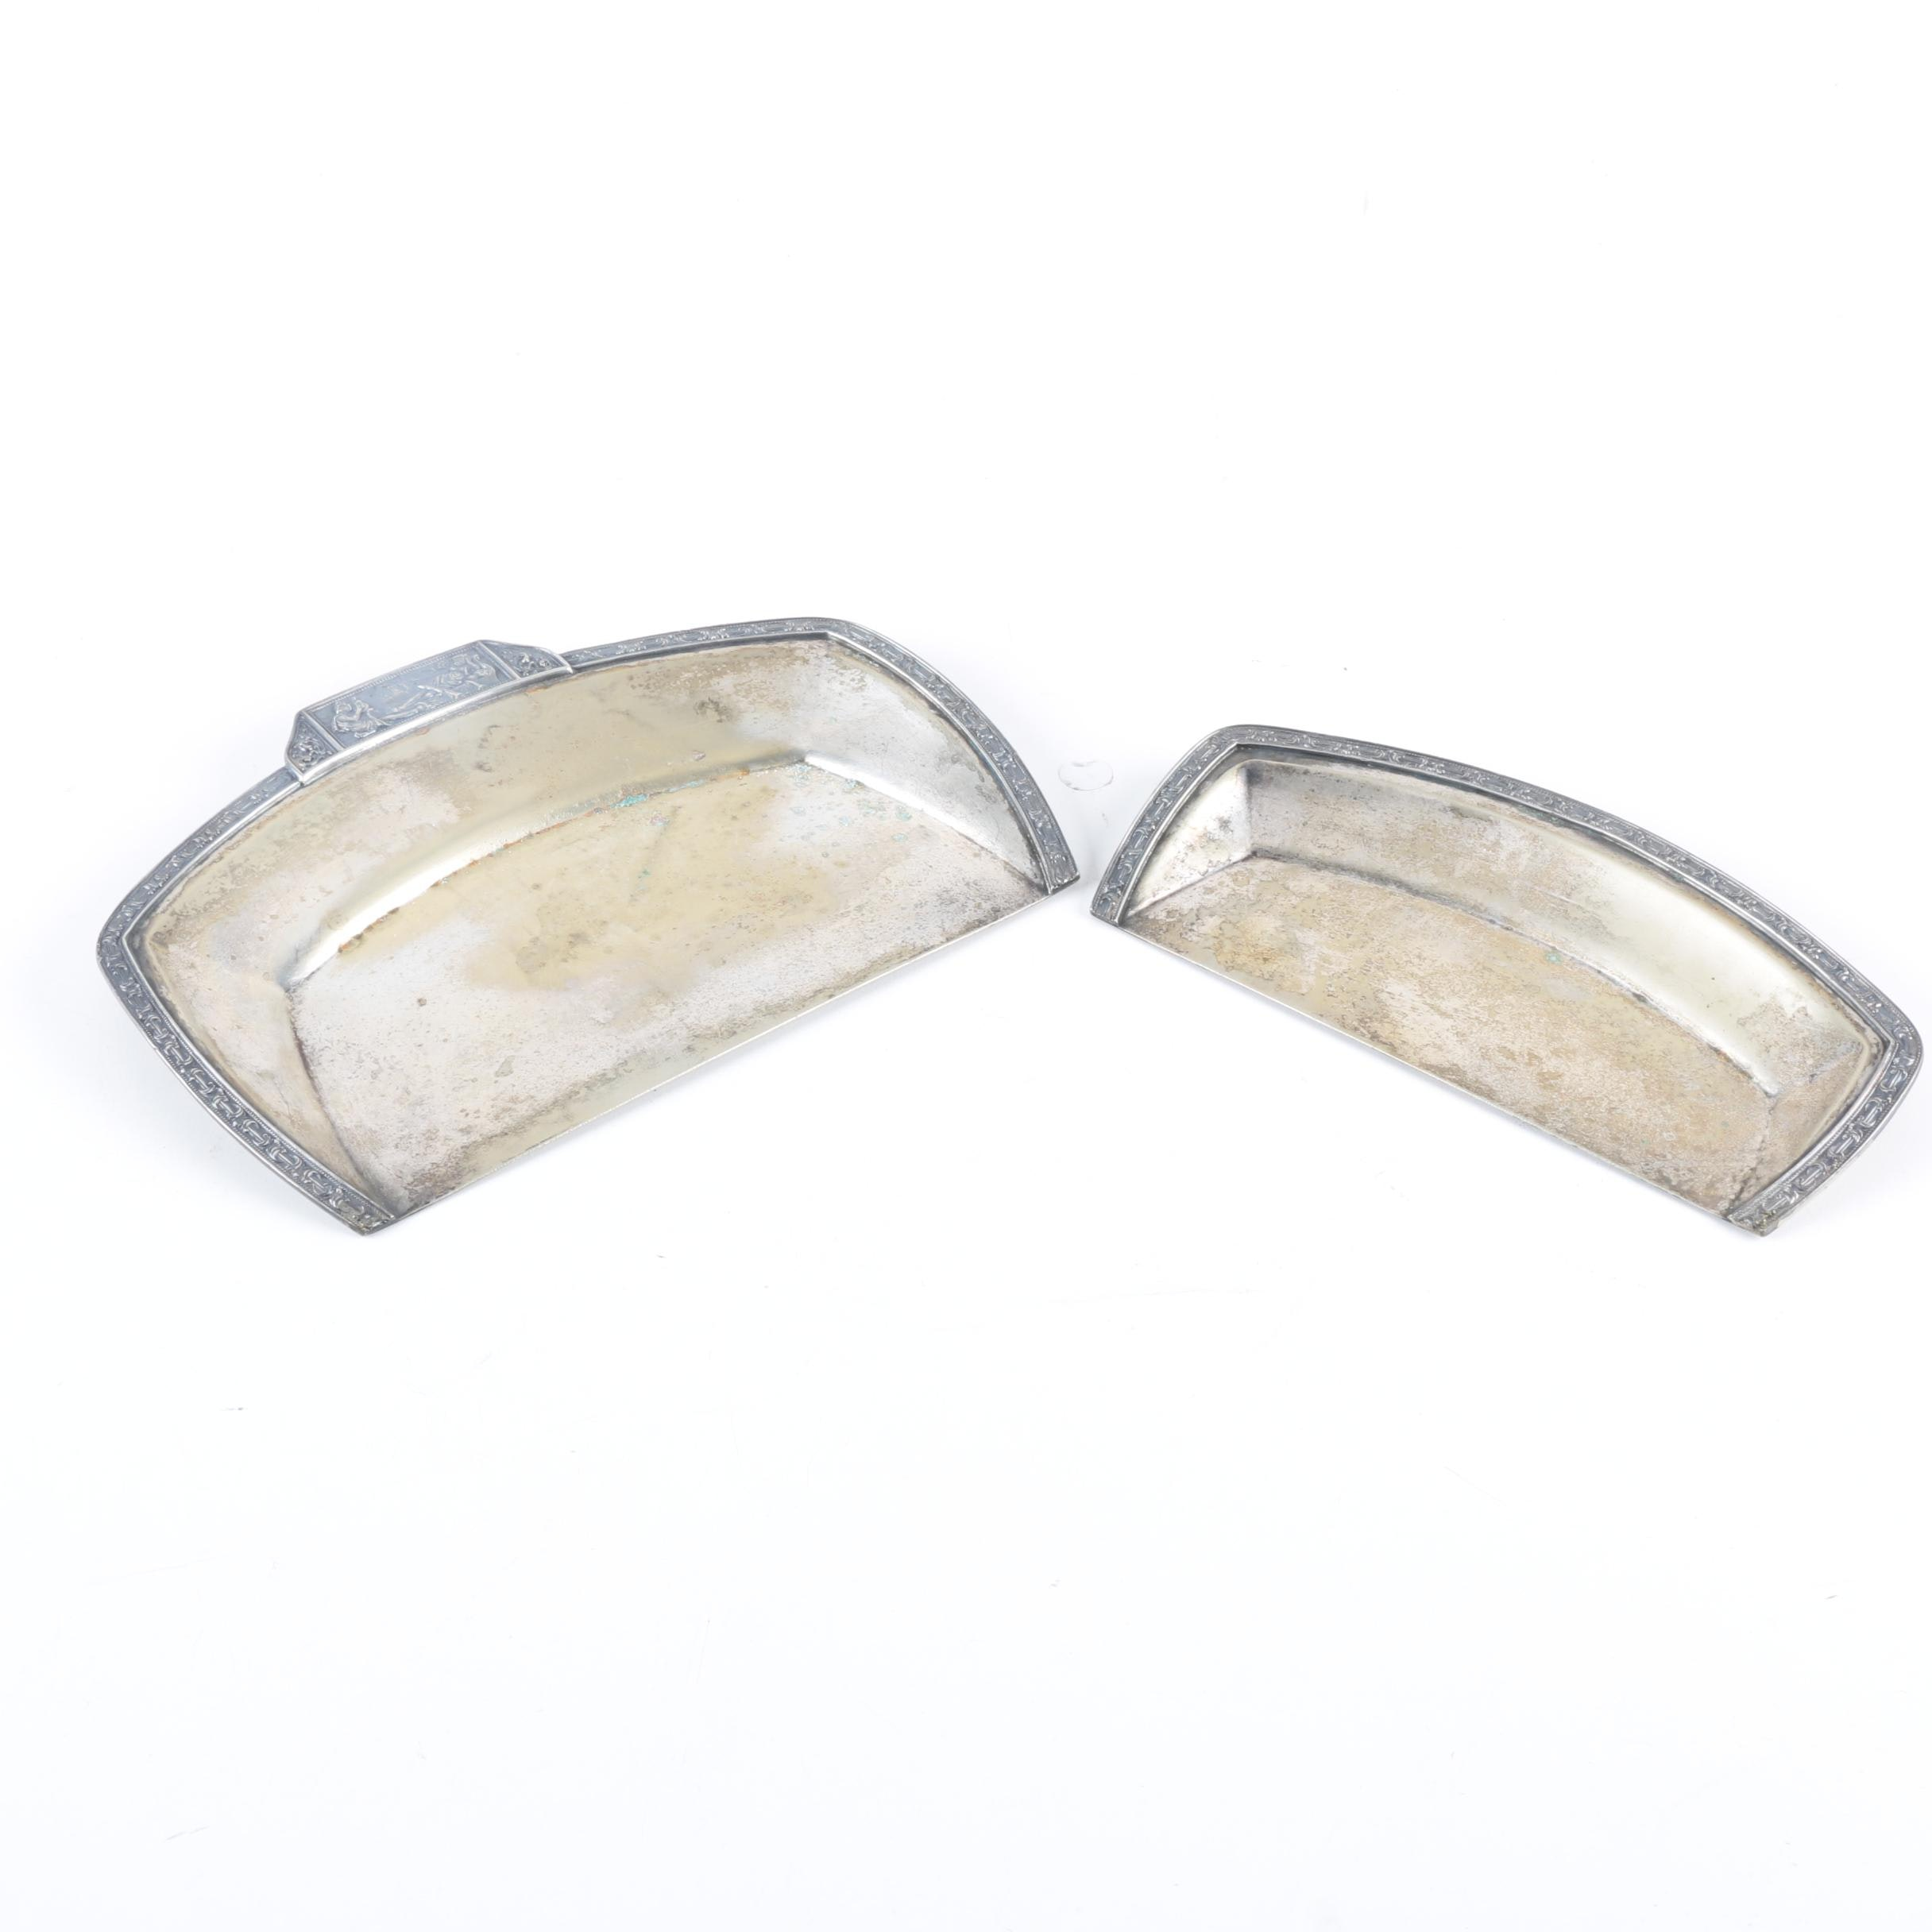 Homan Plate Plated Silver Crumb Catchers